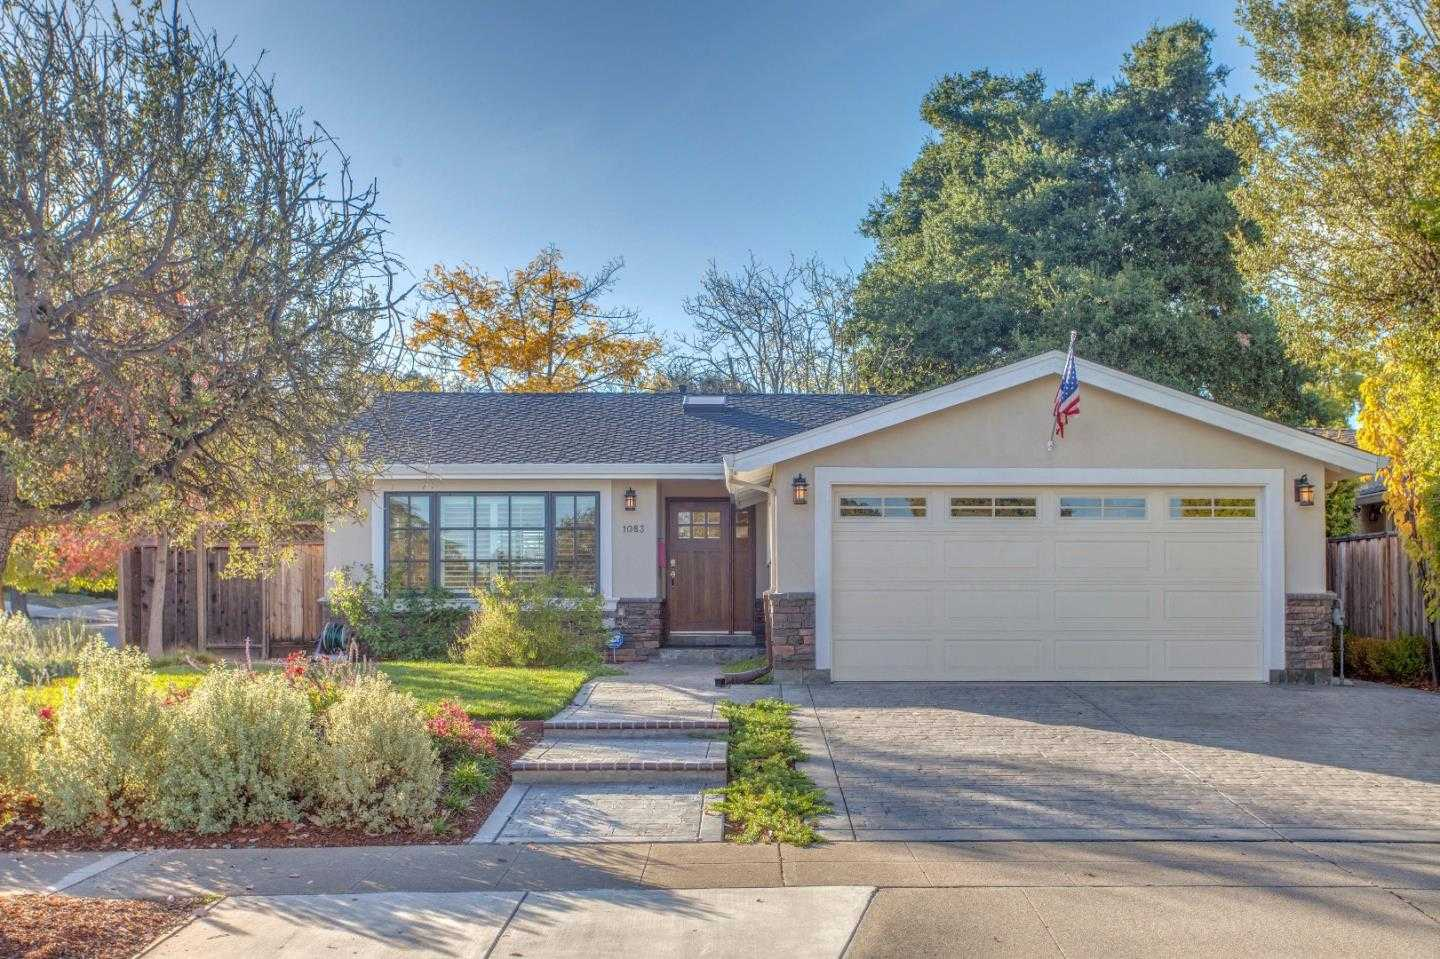 $1,868,000 - 3Br/2Ba -  for Sale in Cupertino